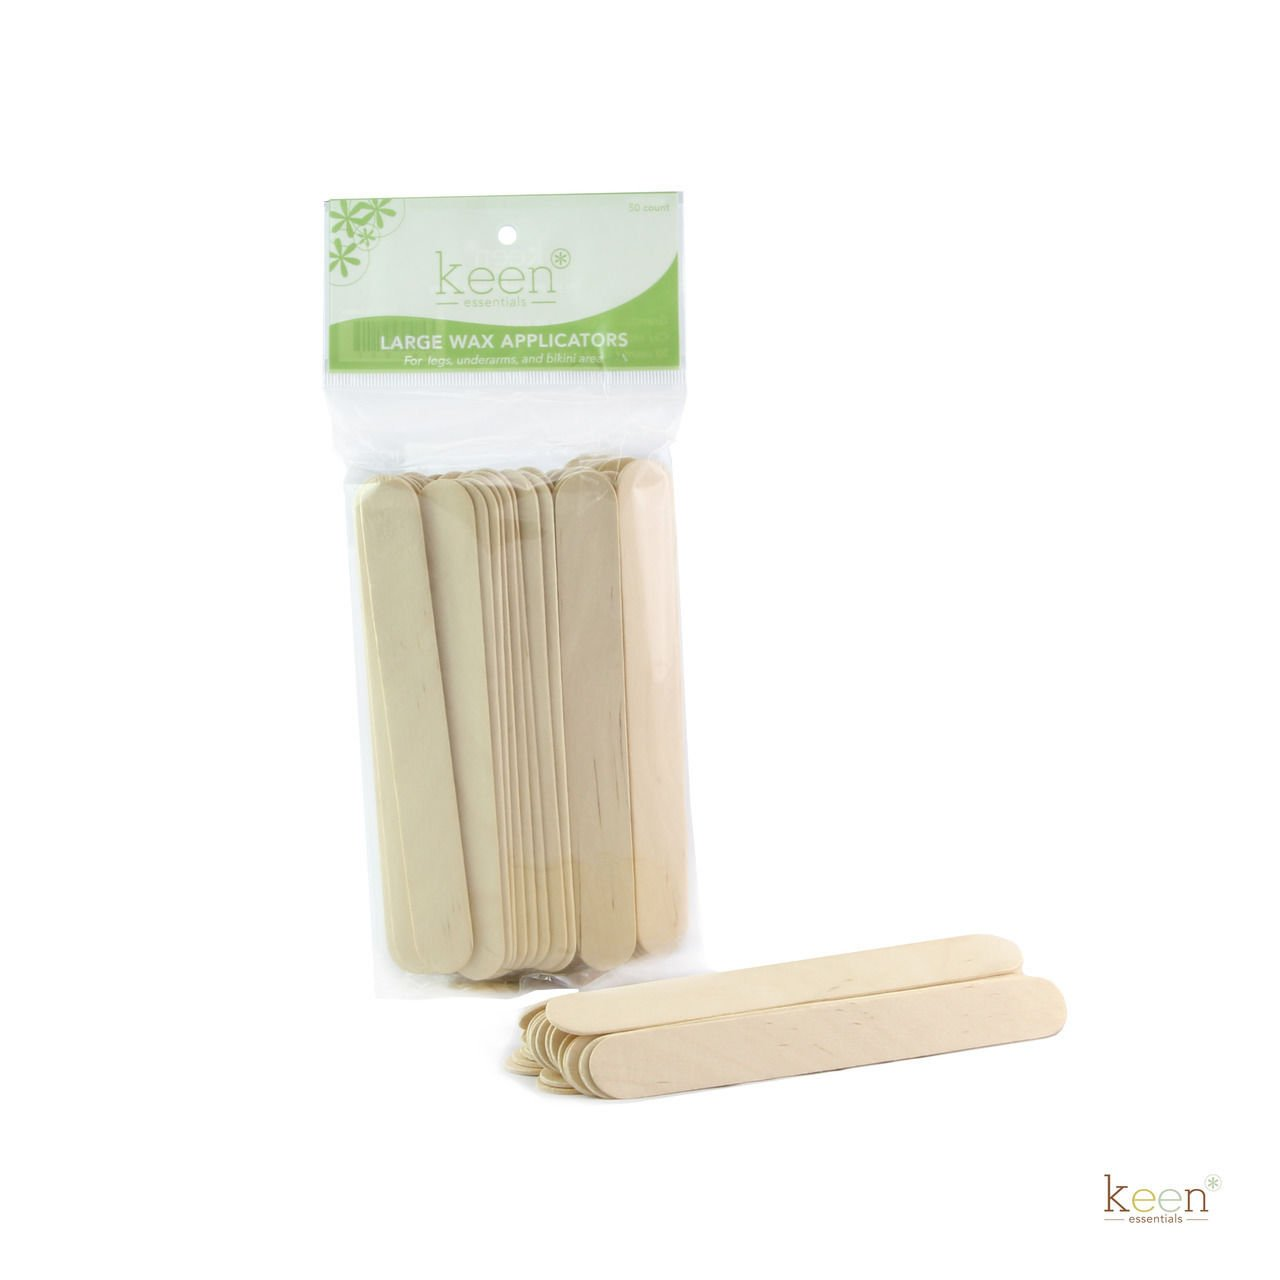 150 Large Keen Wooden Sticks Wax Applicators, Coffee Stir sticks, Crafts KEEN ESSENTIALS